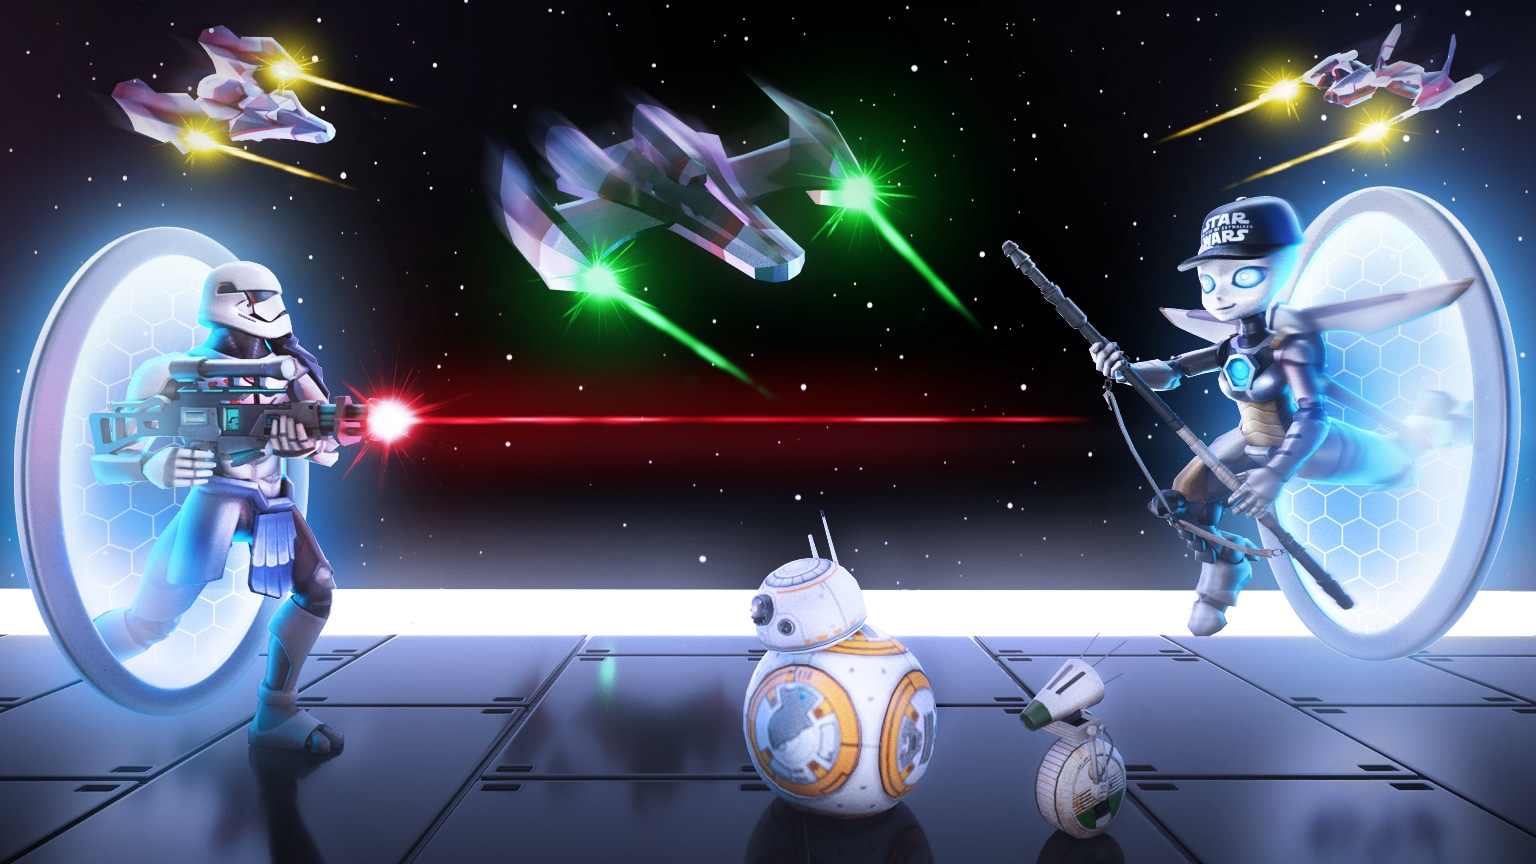 Star Wars and Roblox Join Forces for the Galactic Speedway Creator Challenge